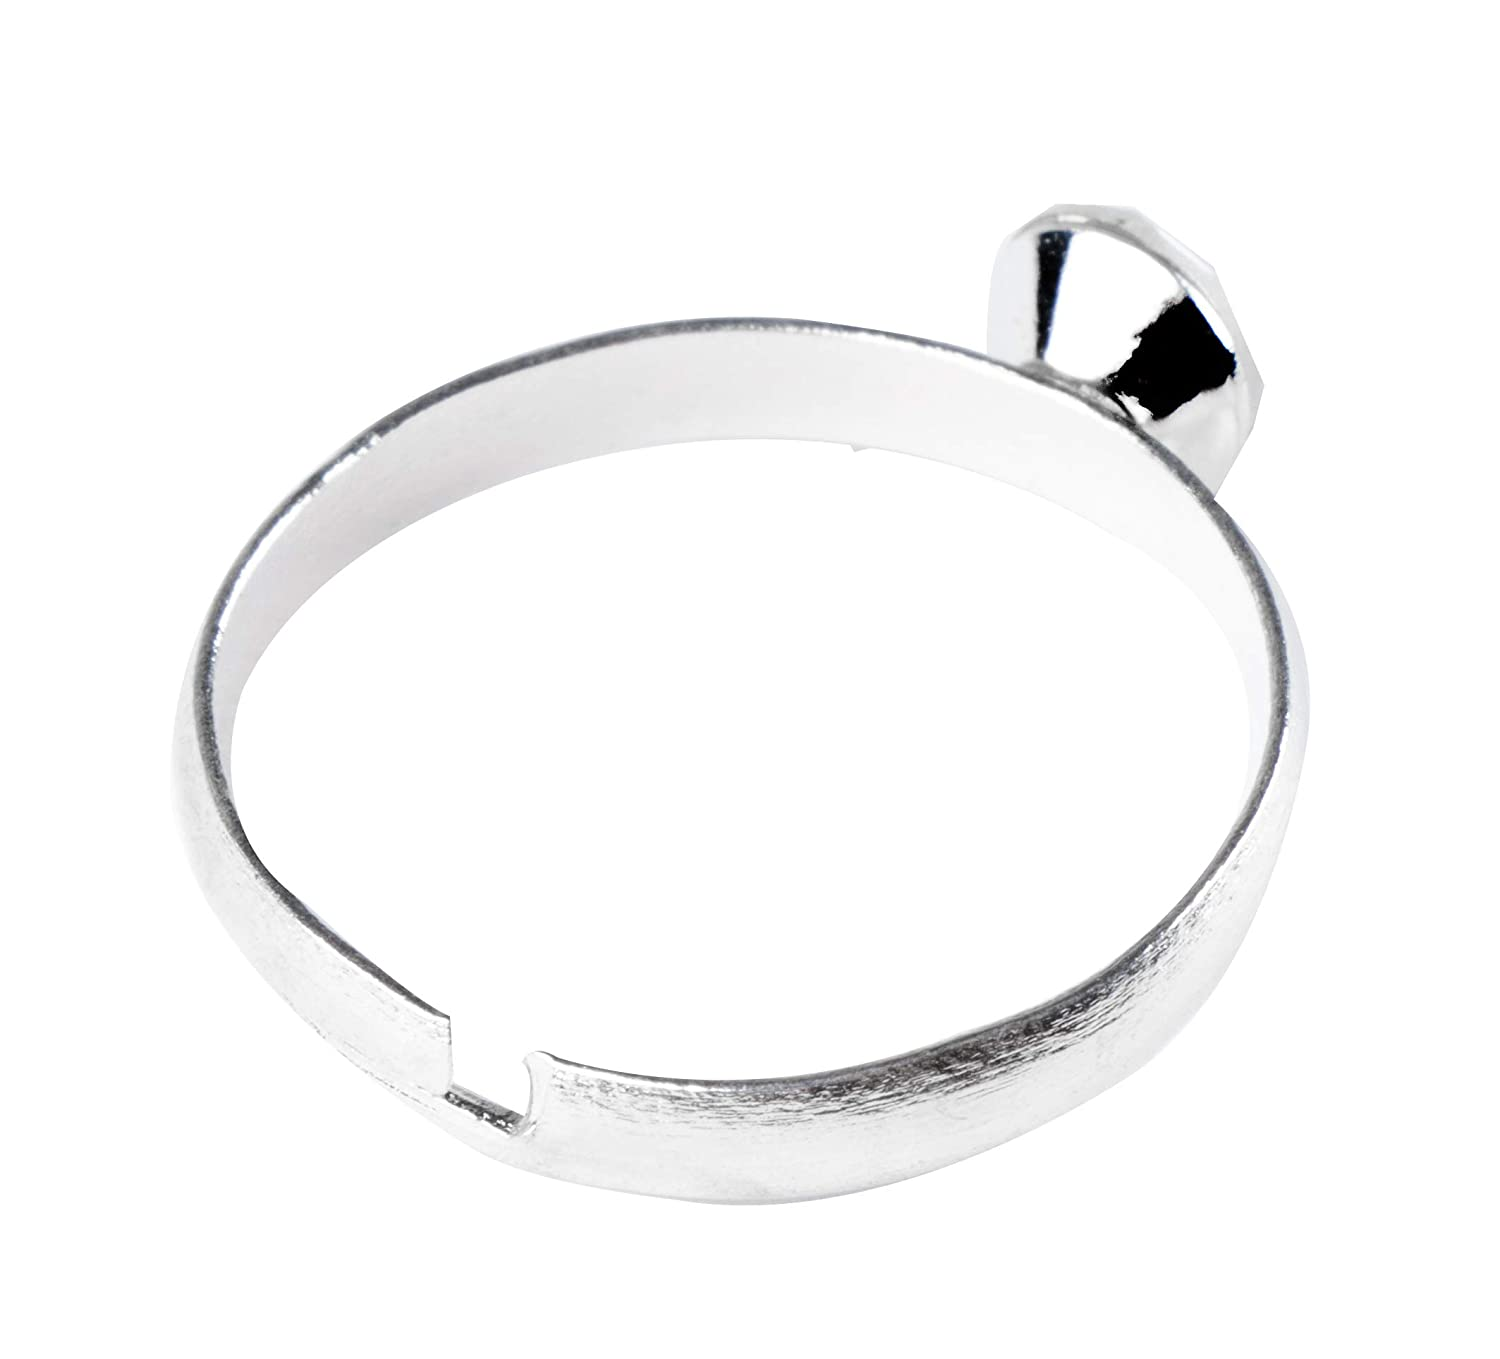 100-Count Engagement Party Supplies Table Decor Arts and Crafts Wedding Band Decoration Favors and Gifts Juvale Silver Diamond Bridal Shower Rings